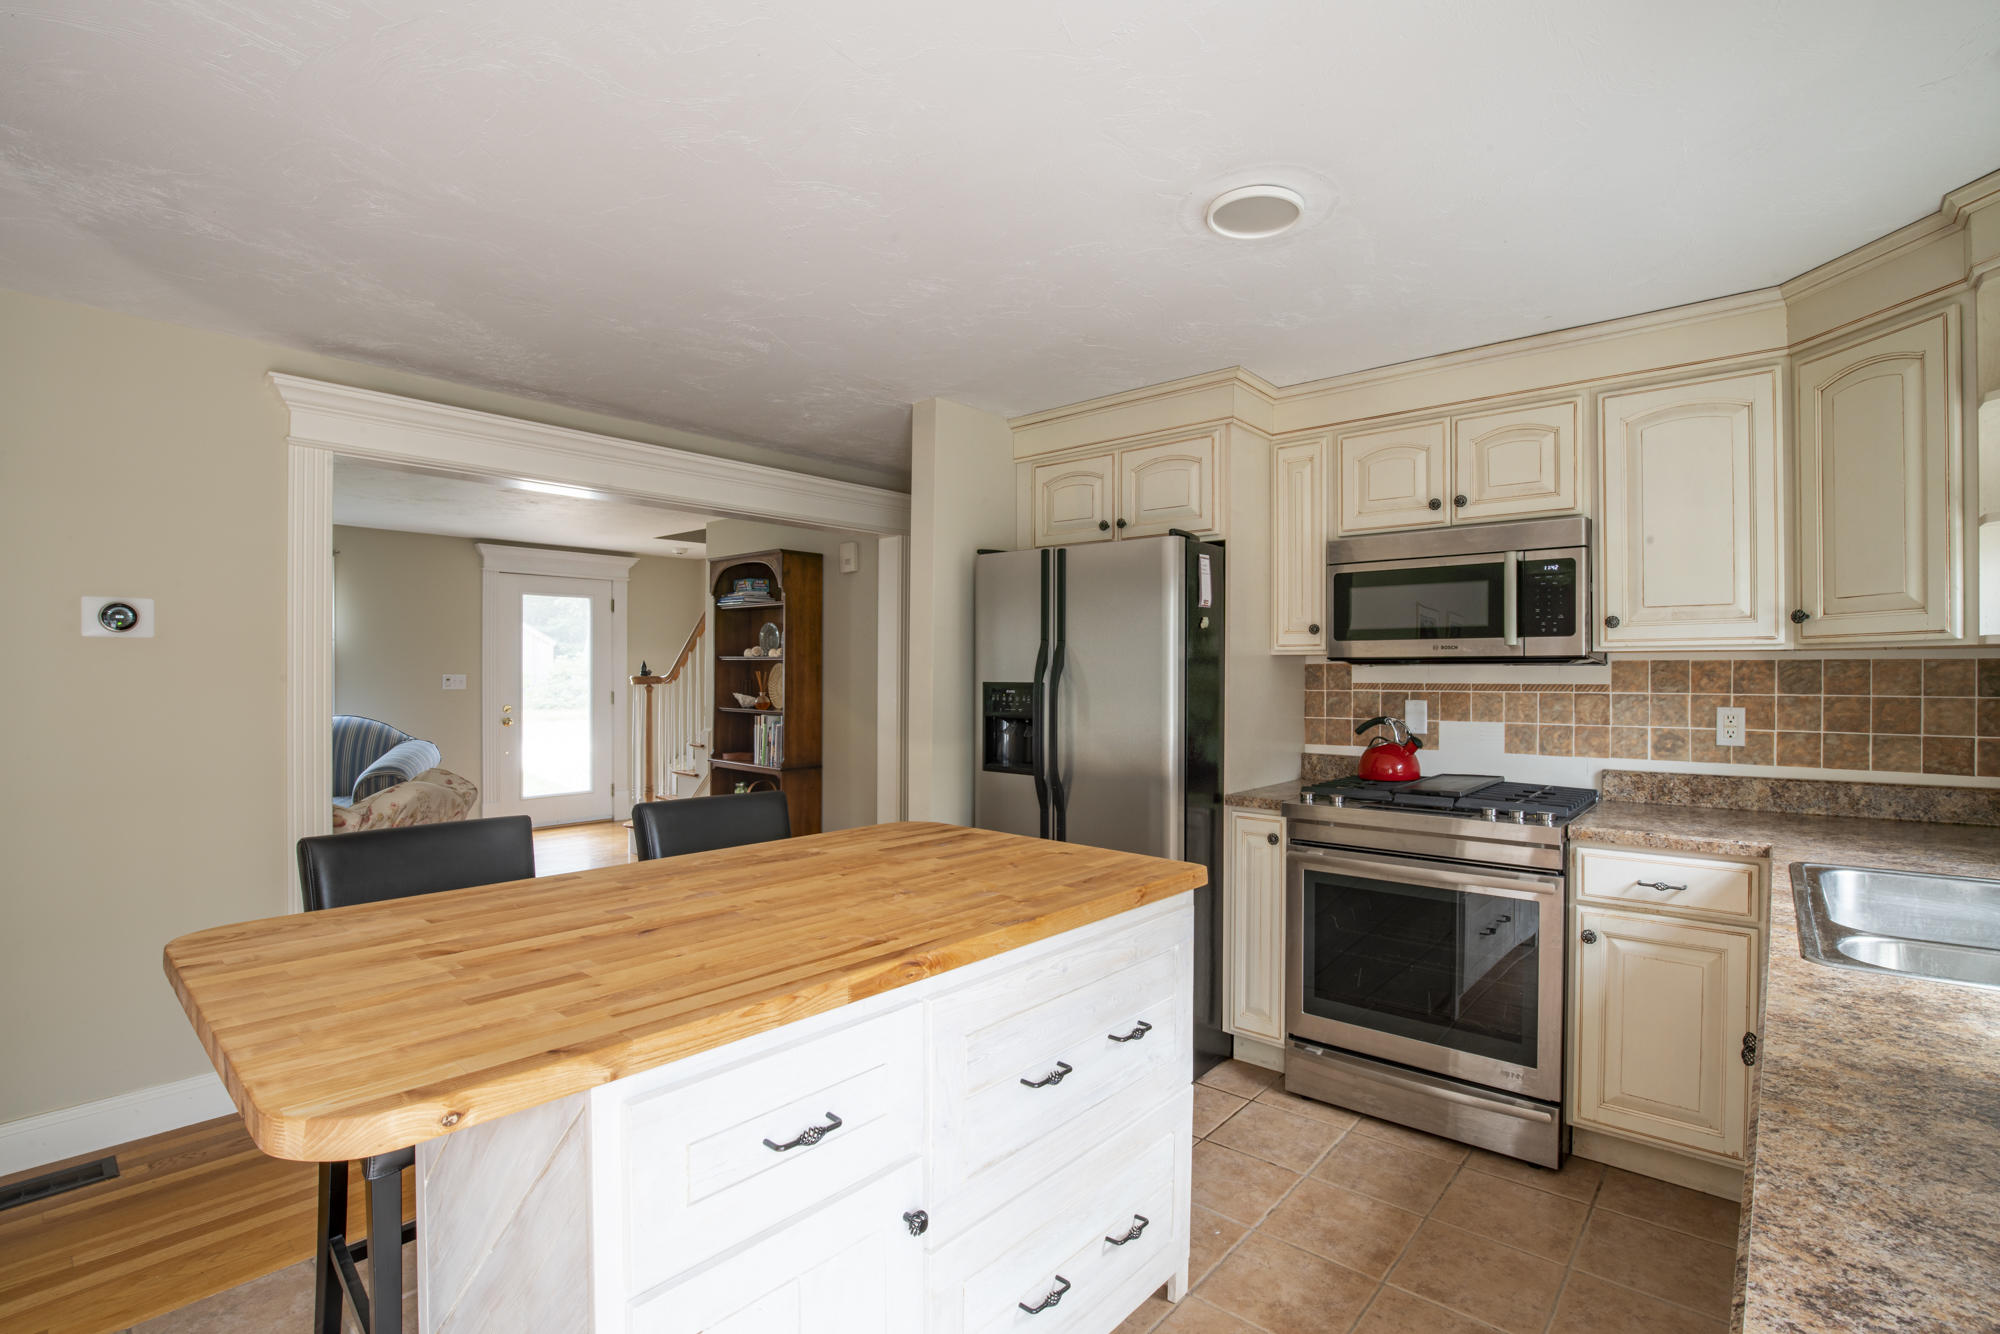 100 Old Mail Road, North Chatham, MA  02650 - slide 6